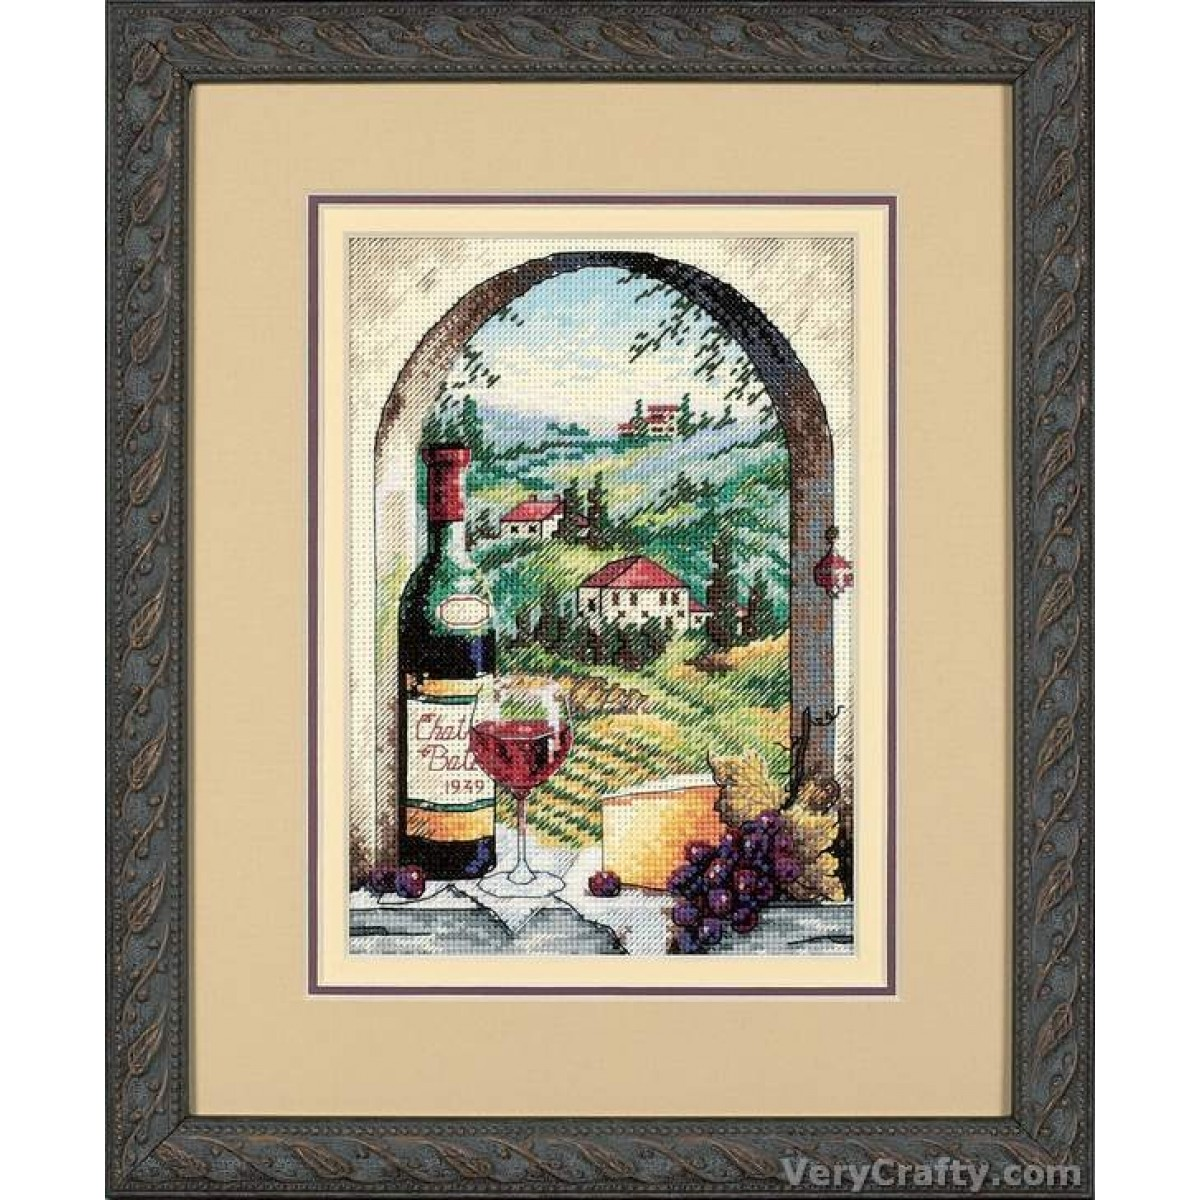 Counted Cross Stitch Kit OVEN Tuscany